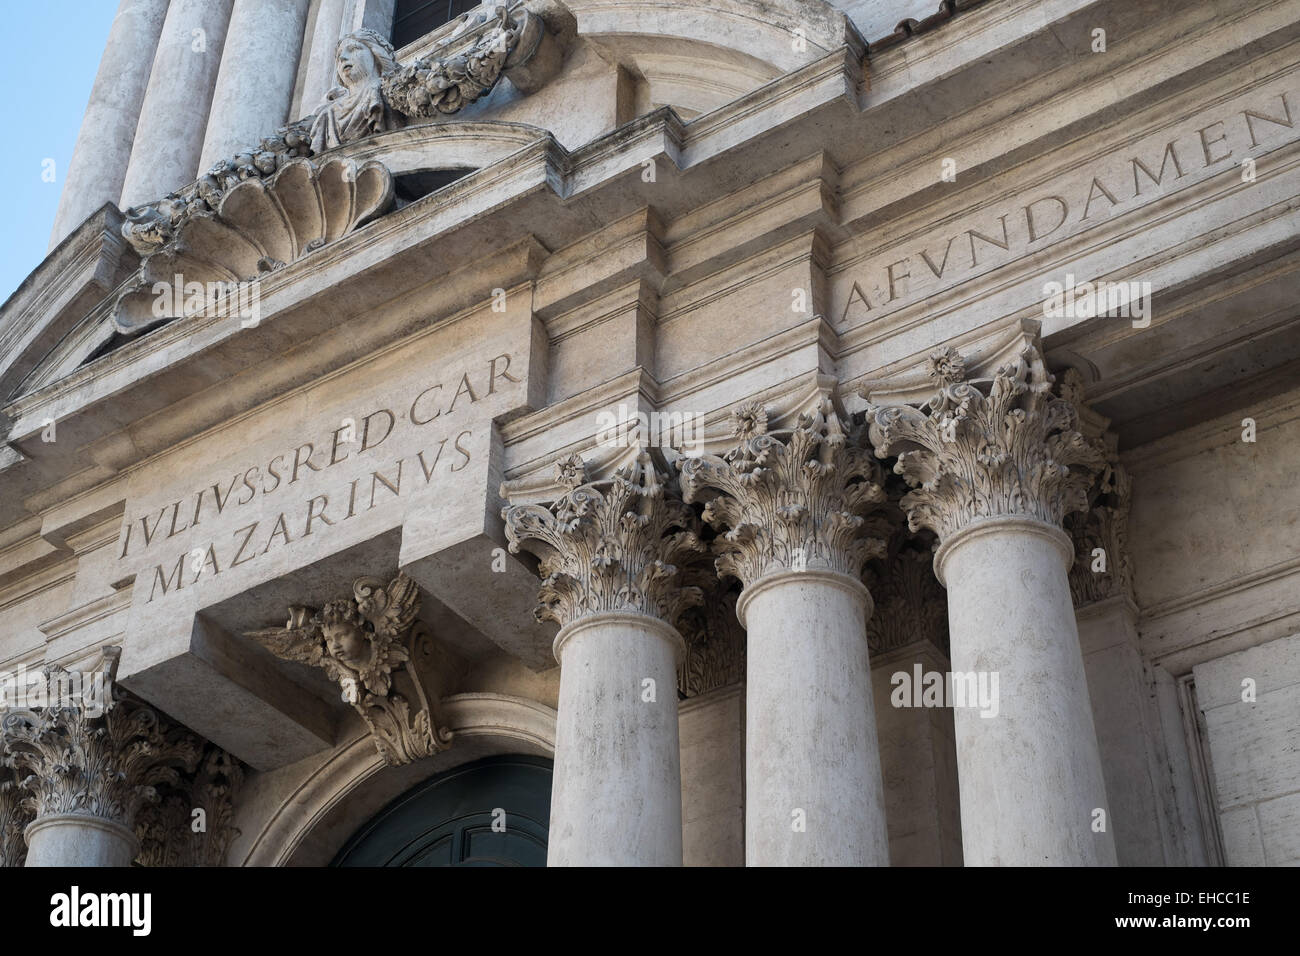 Church entablature detail in Rome Italy. - Stock Image